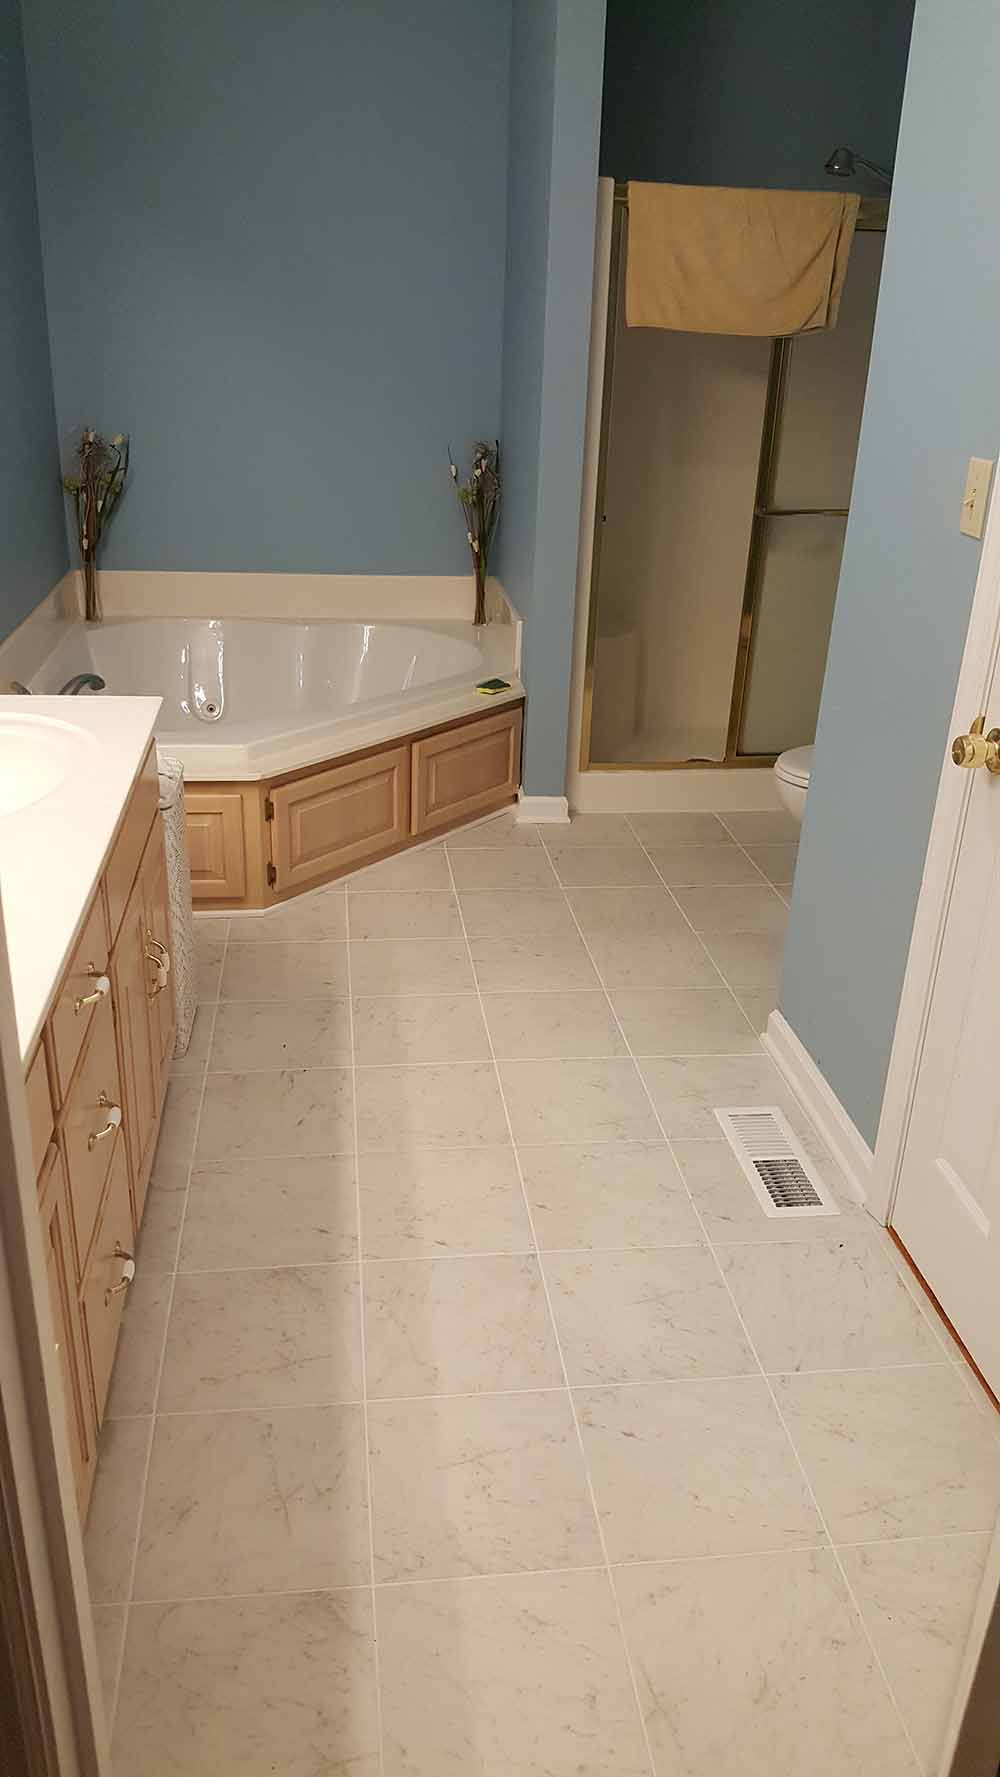 Chattanooga tile installation repair complete flooring service chattanooga tile installation chattanooga tile installation doublecrazyfo Gallery